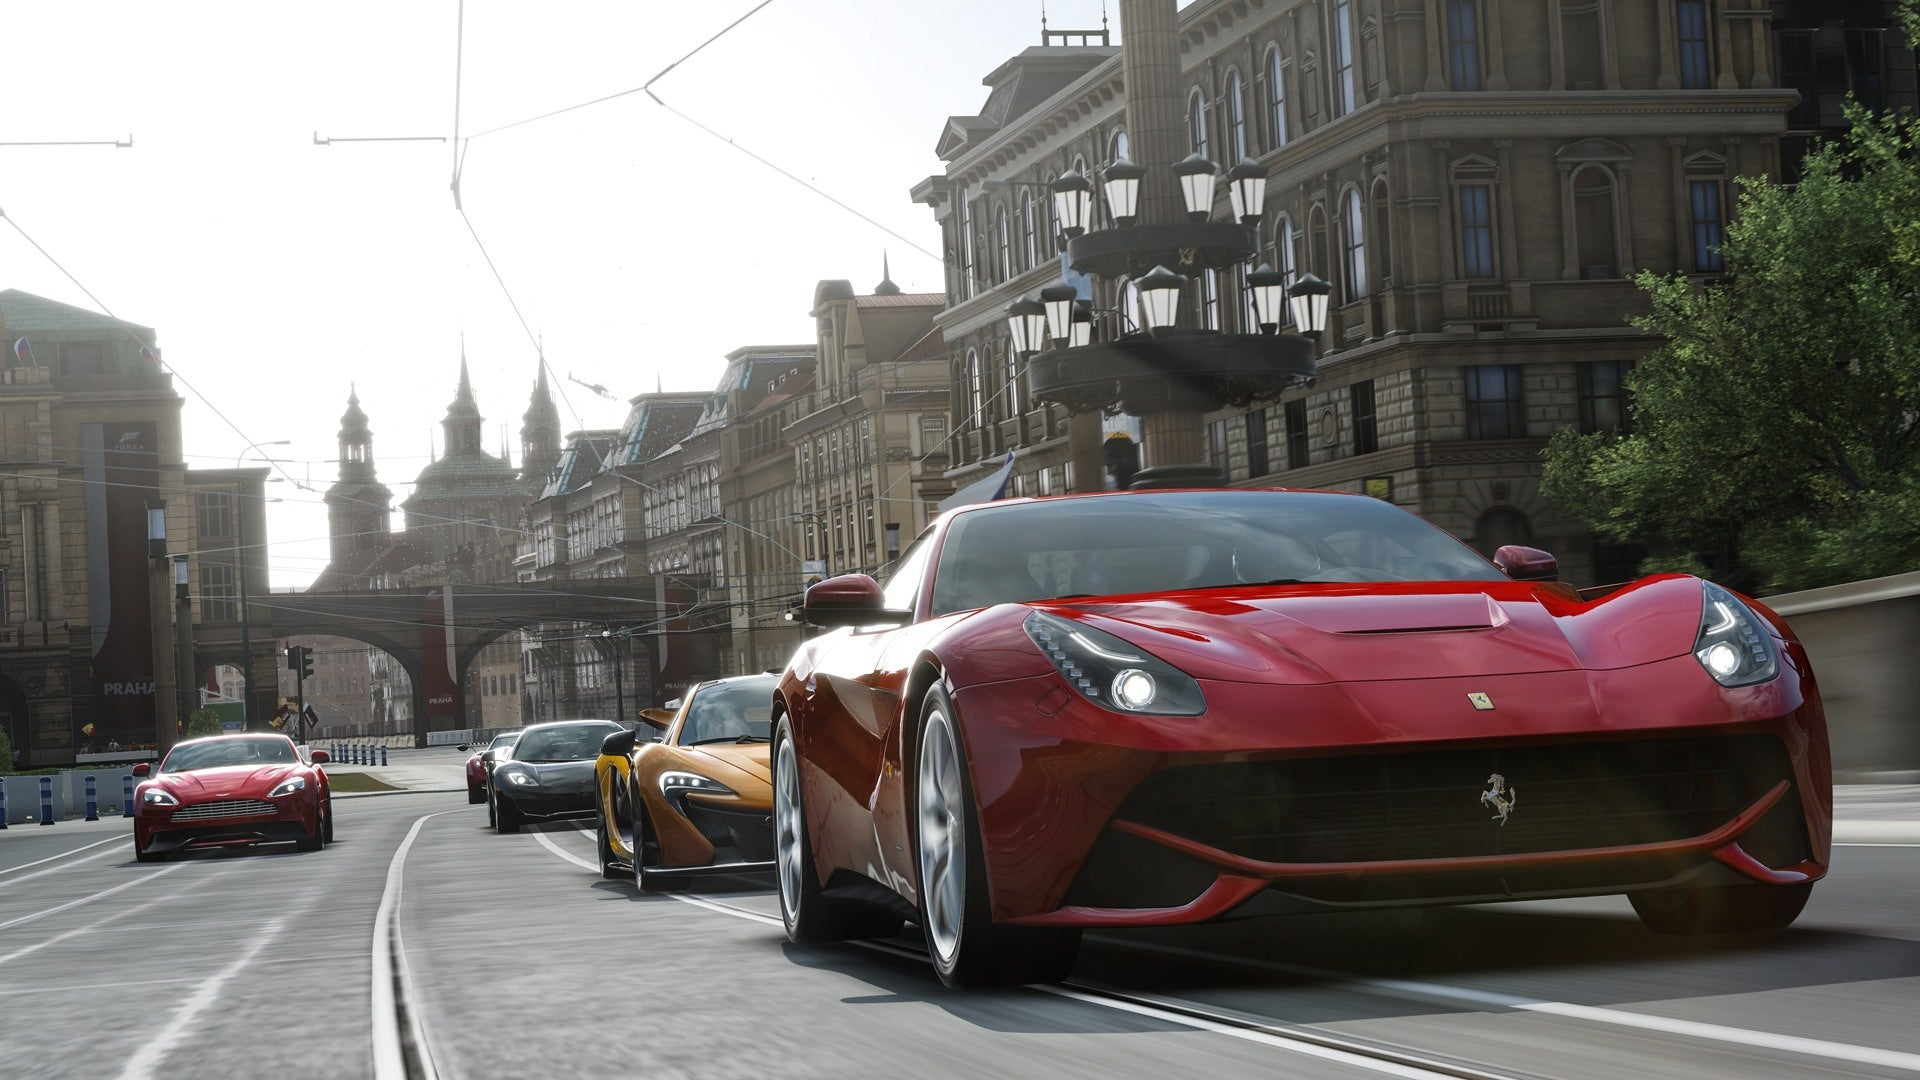 Forza 5 Racing Game of the Year Edition Revealed - IGN